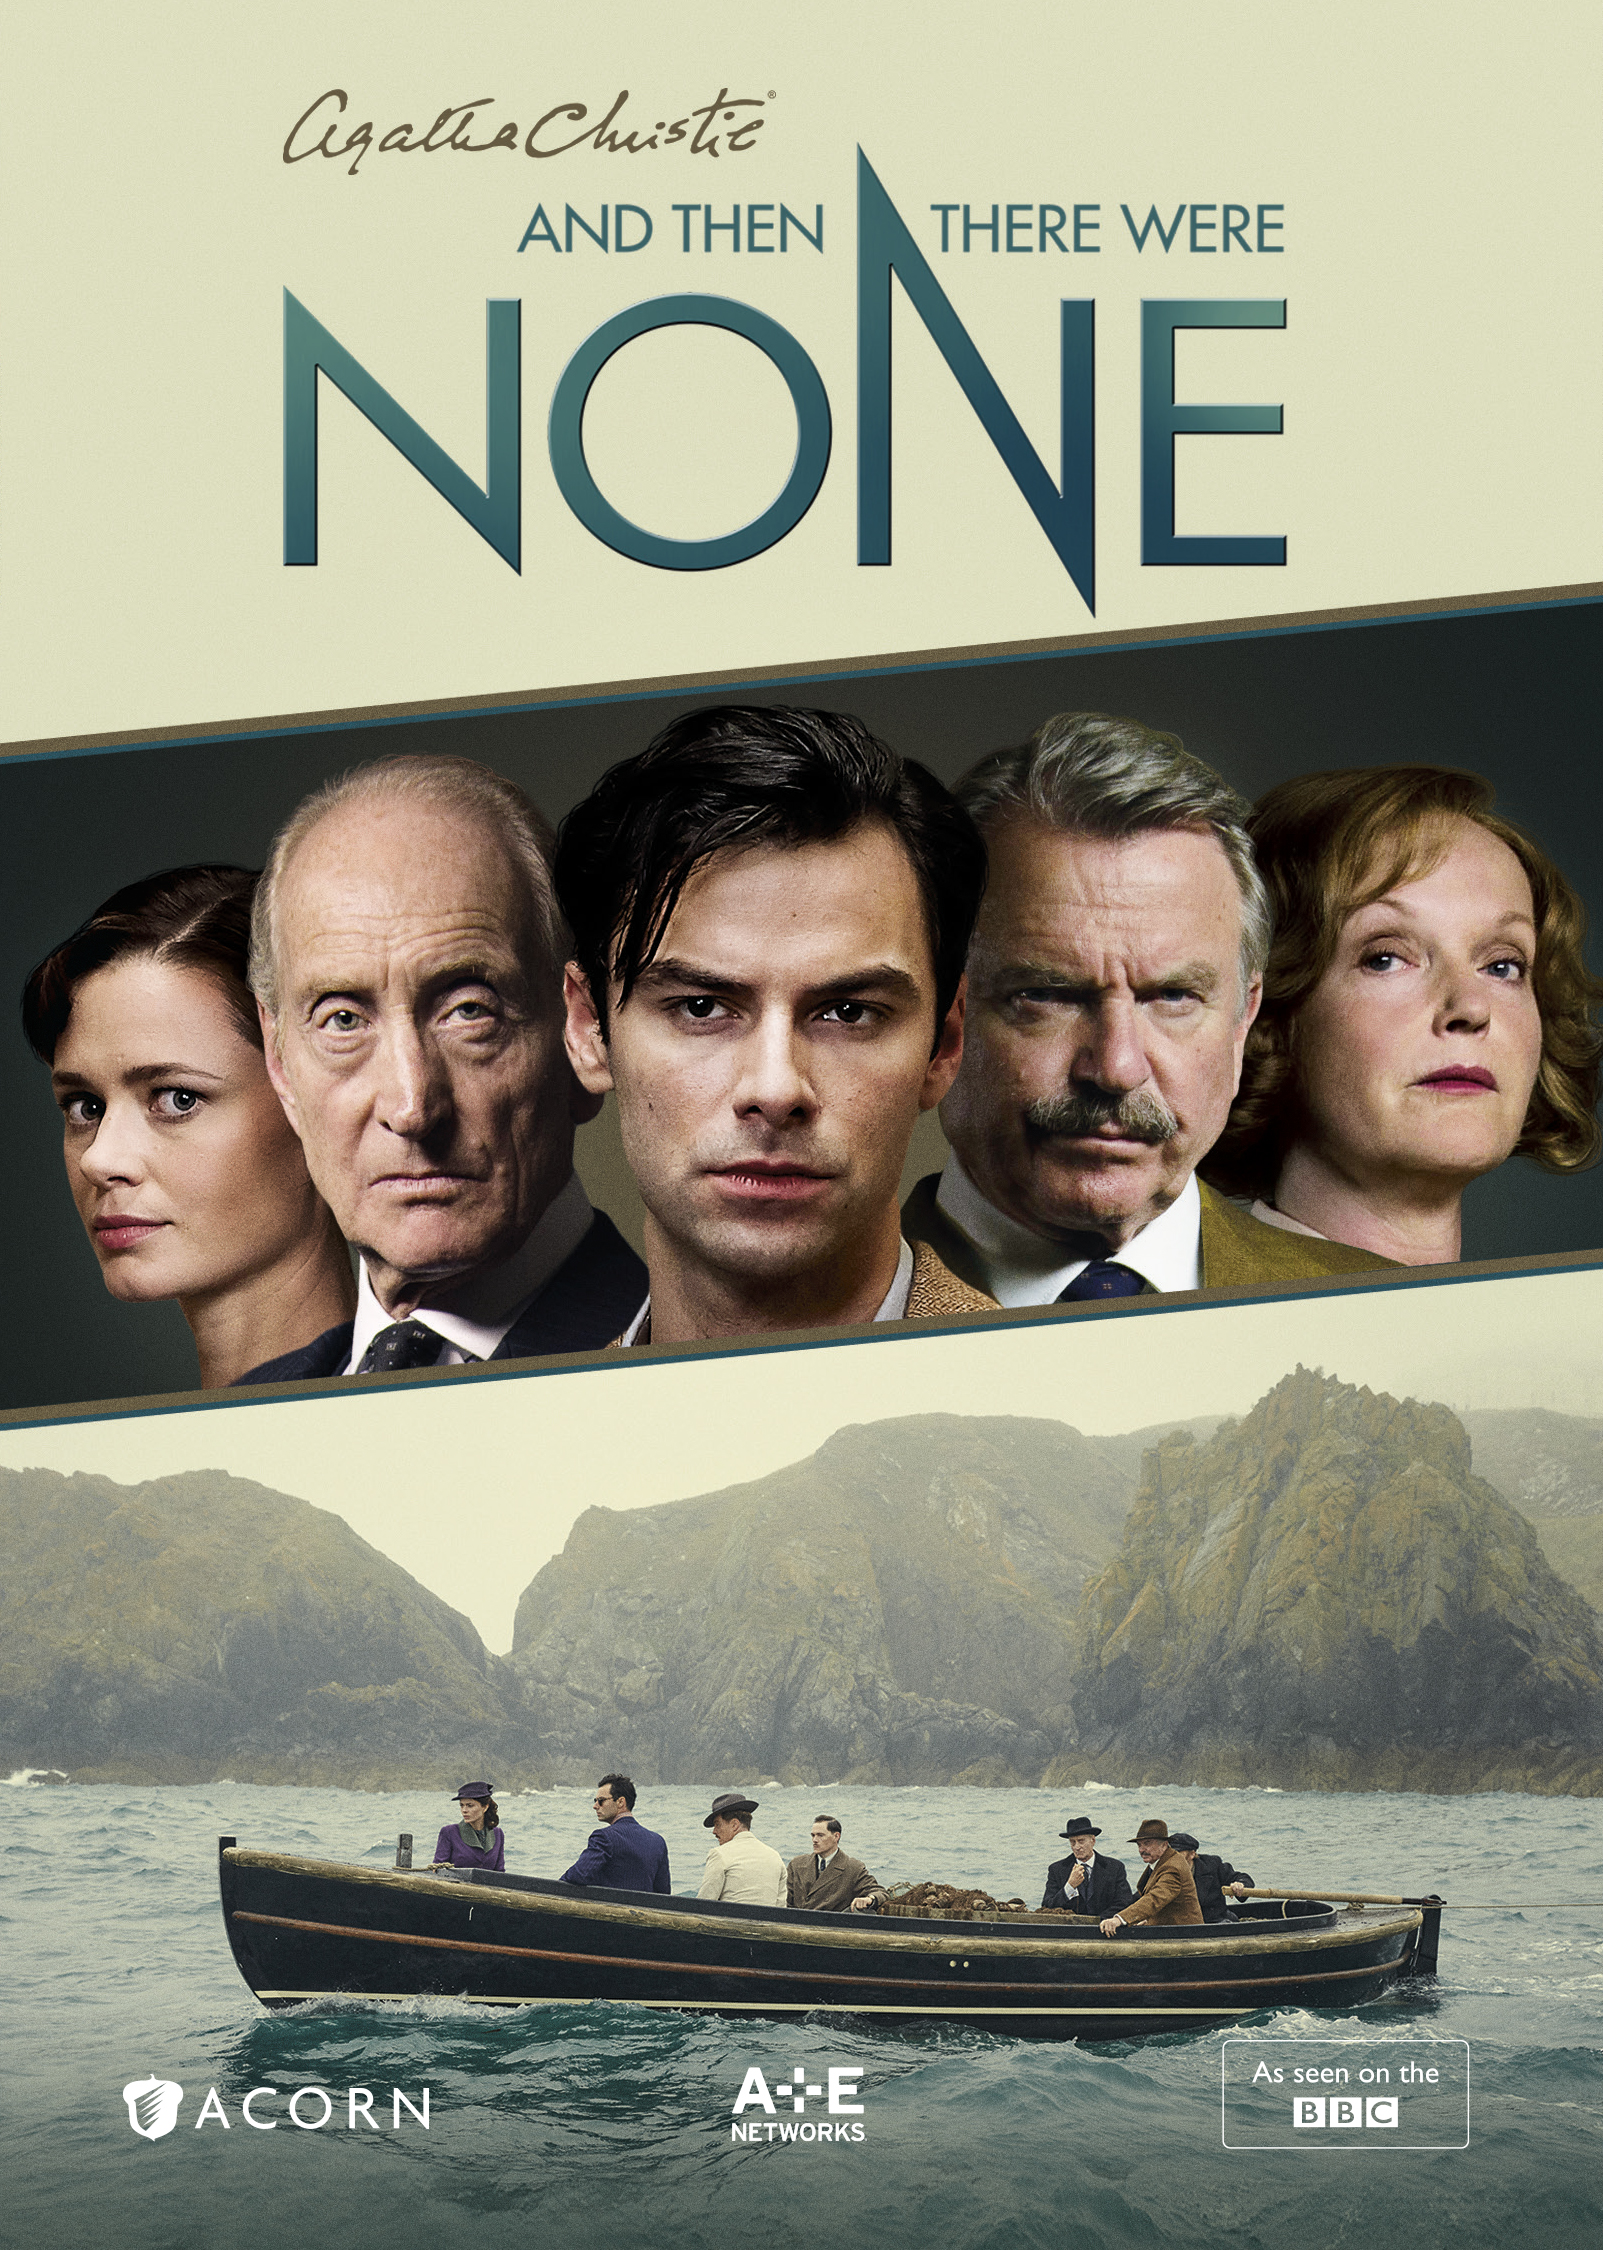 and_and_then_there_were_none_keyart